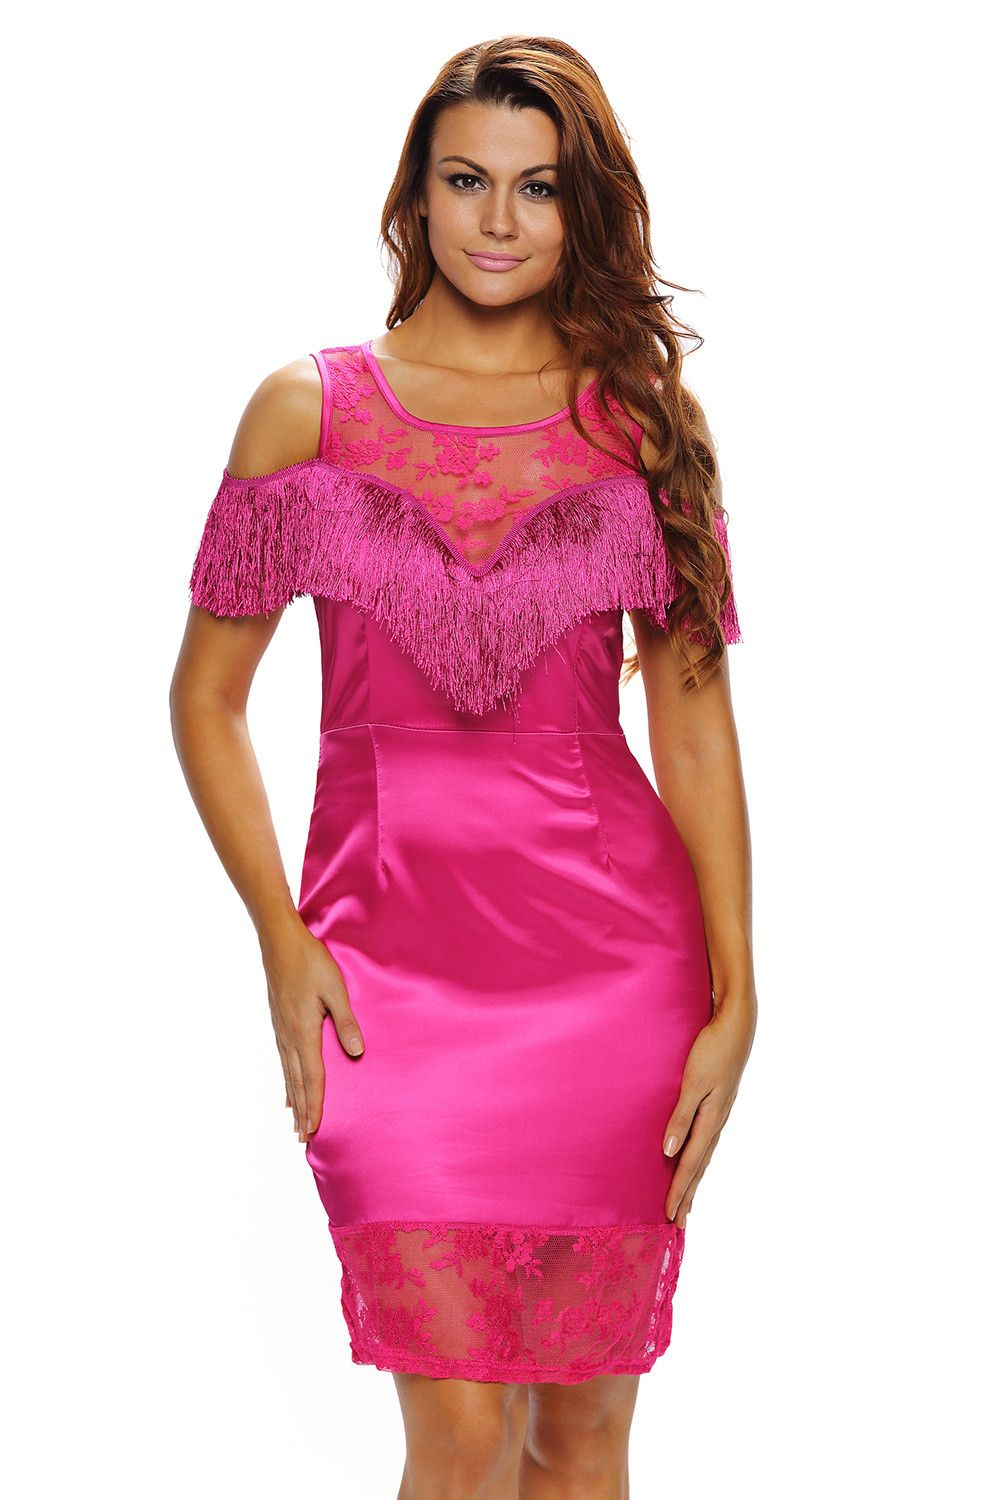 0ffae83abca Robes De Soiree epaule Froide Bordee Cocktail Rose Robe Moulante Pas Cher  www.modebuy.com  Modebuy  Modebuy  CommeMontre  sexy  dress  Rose